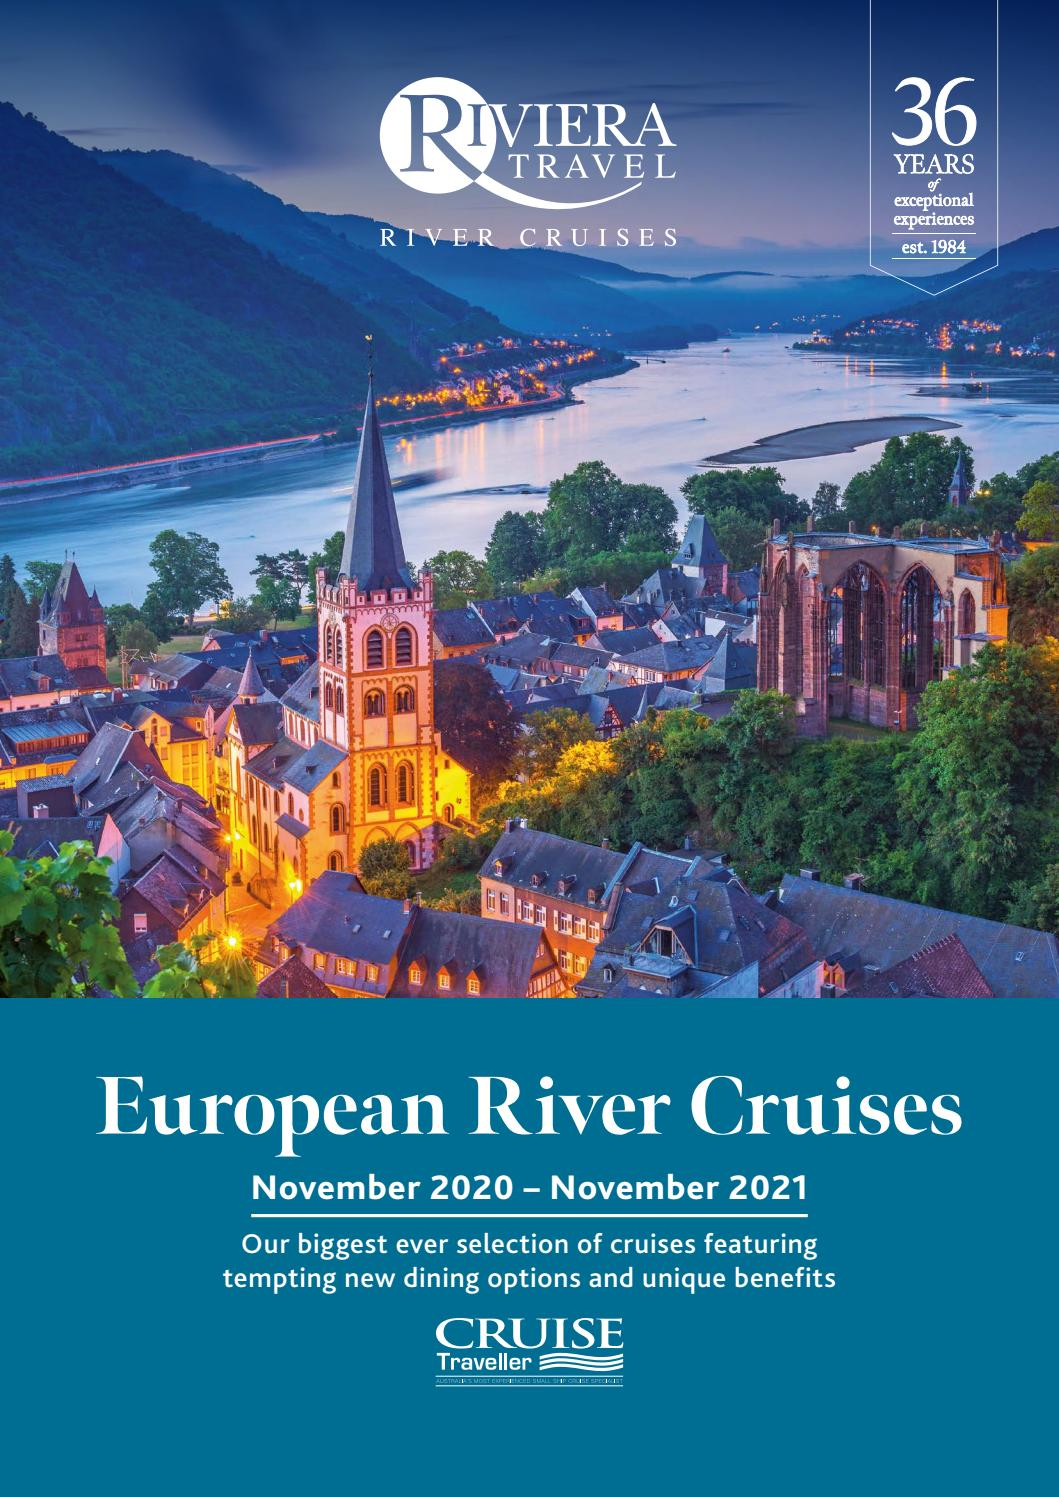 European River Cruises November 2020 To November 2021 Cruise Pertaining To El Monte Union First Day Of School 2021 18 Calendar